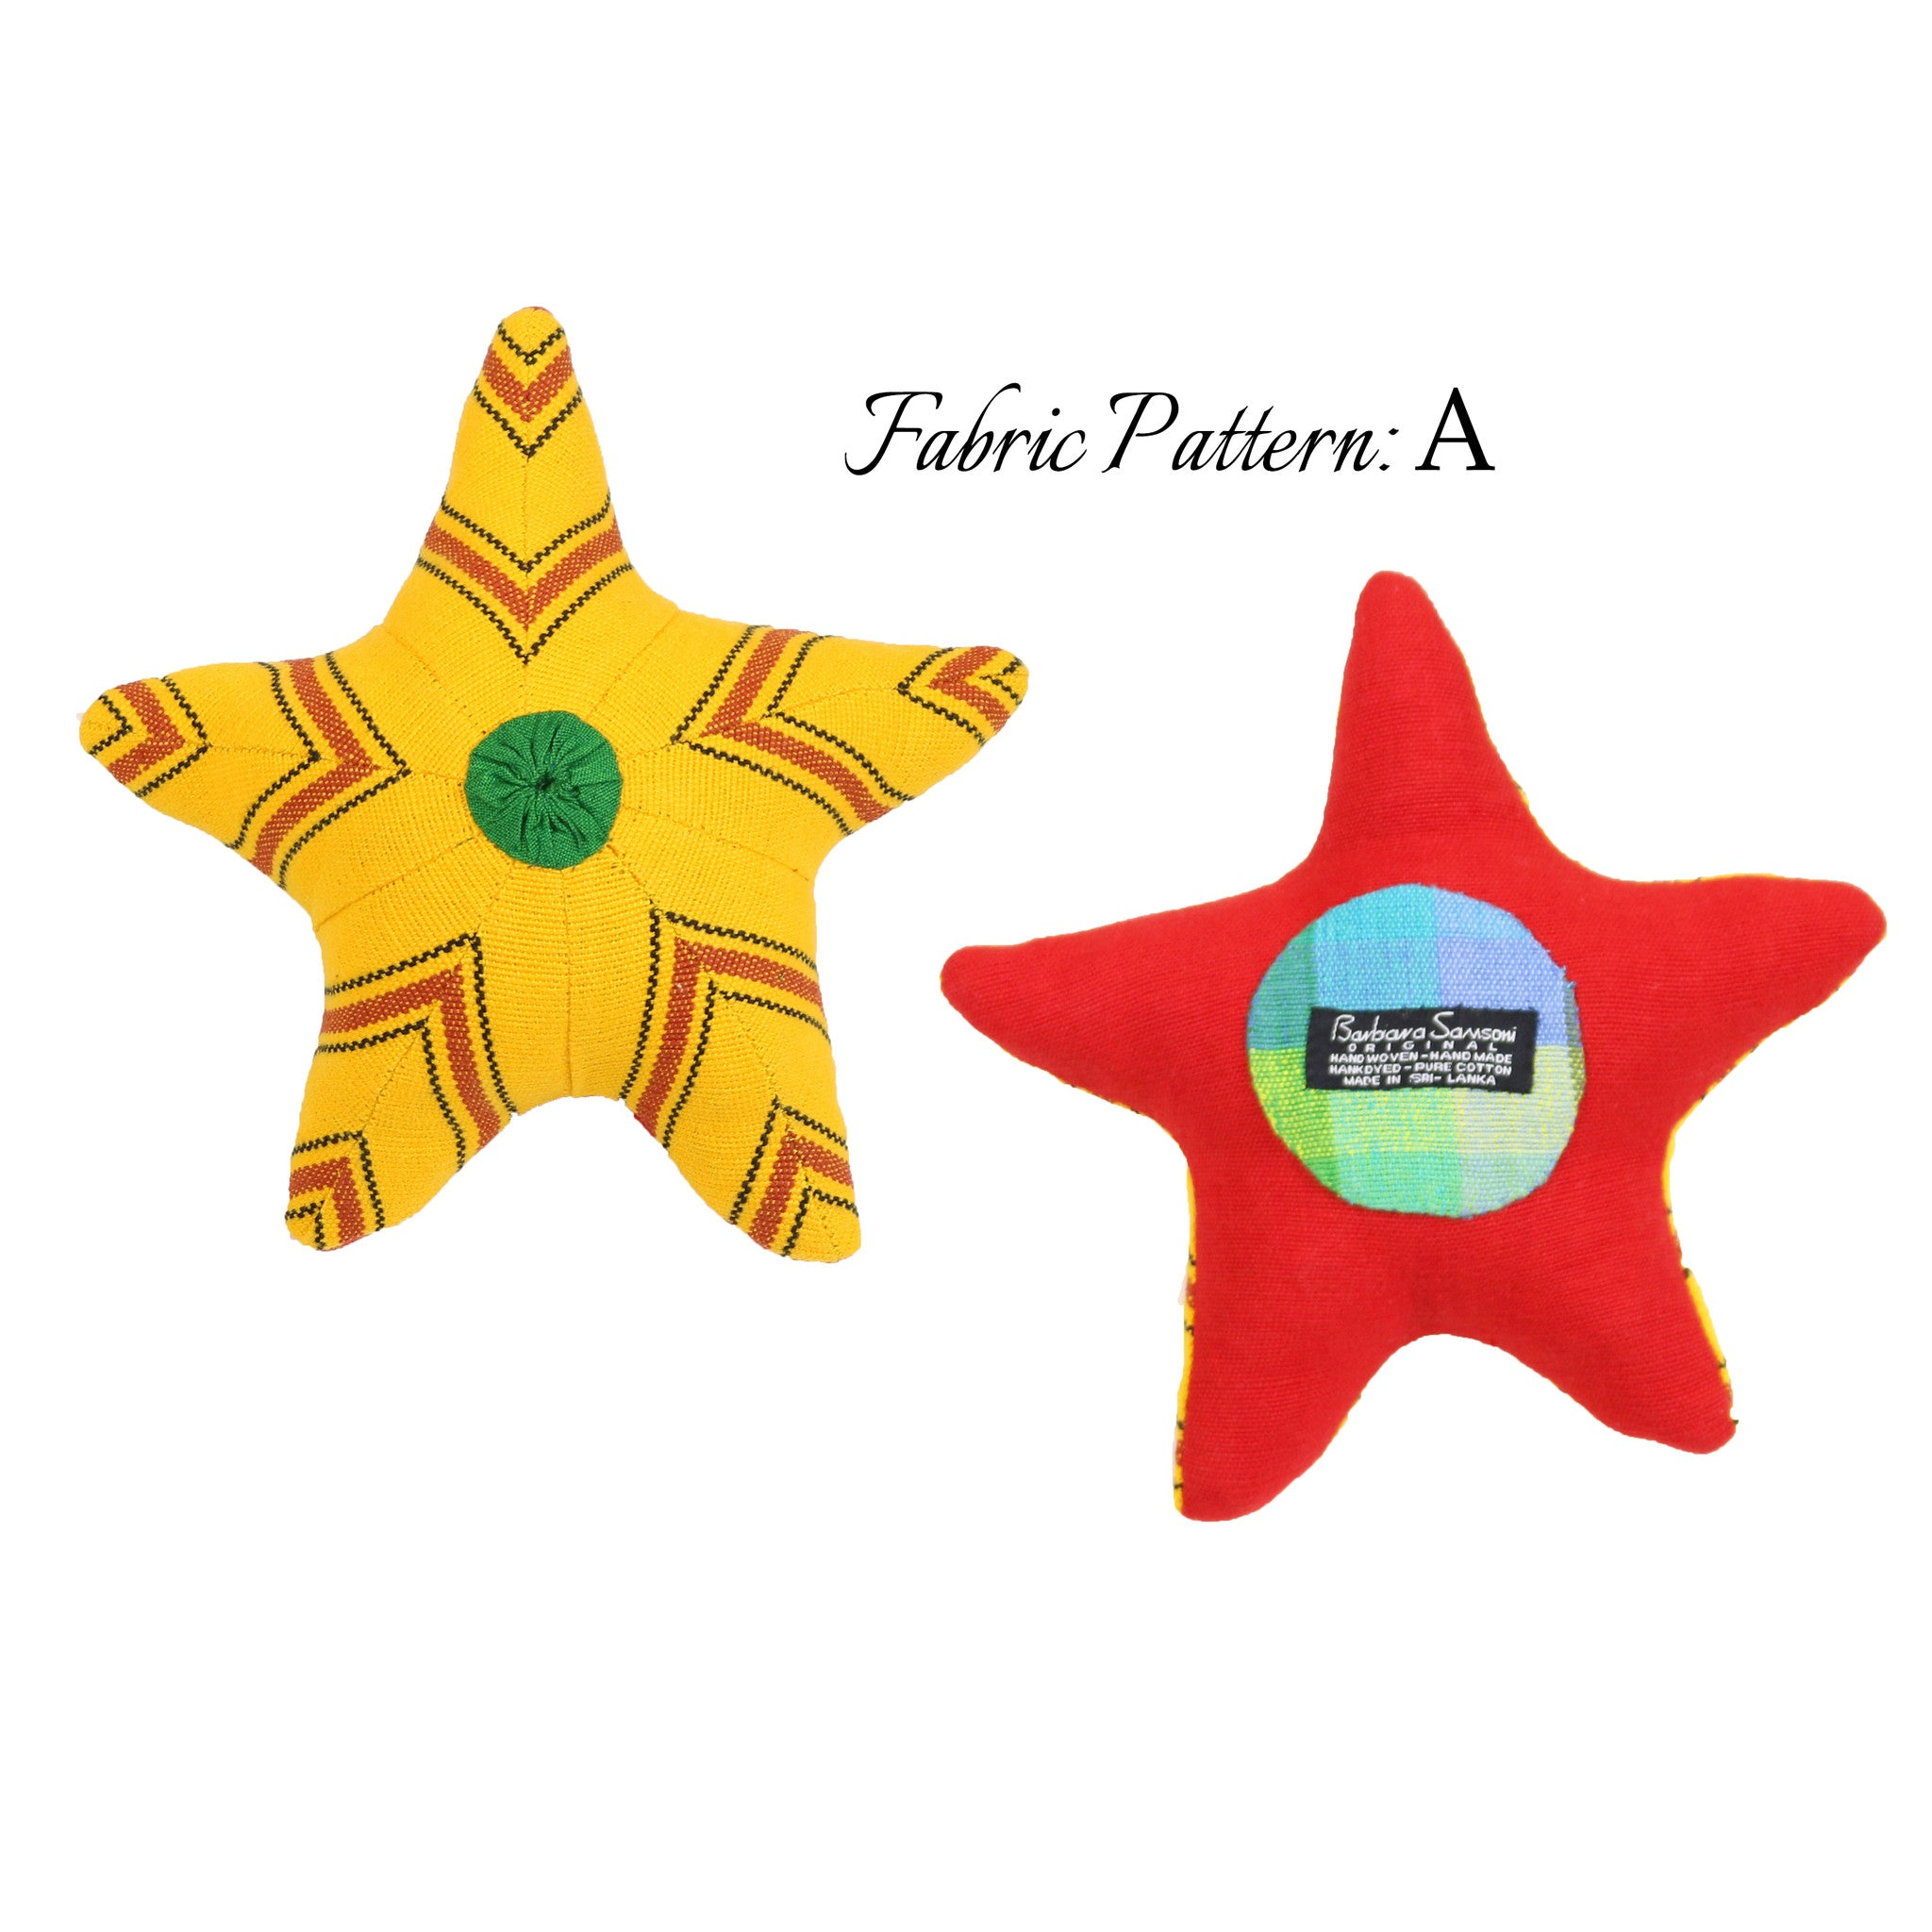 Sunny, the Starfish – pattern A (front & back view)